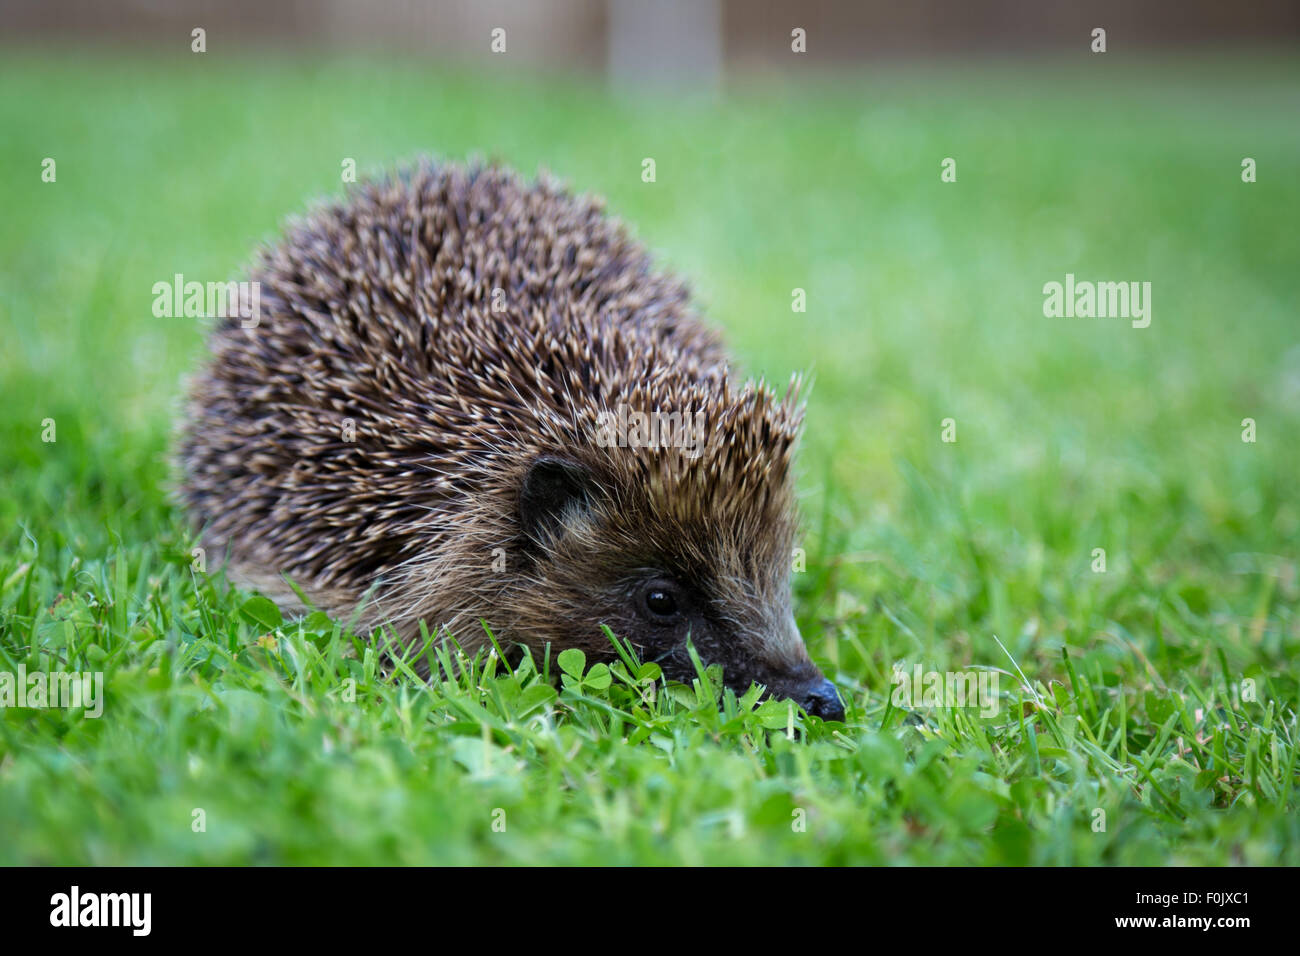 Hedgehog near Loch Tay in the Scottish Highlands. - Stock Image